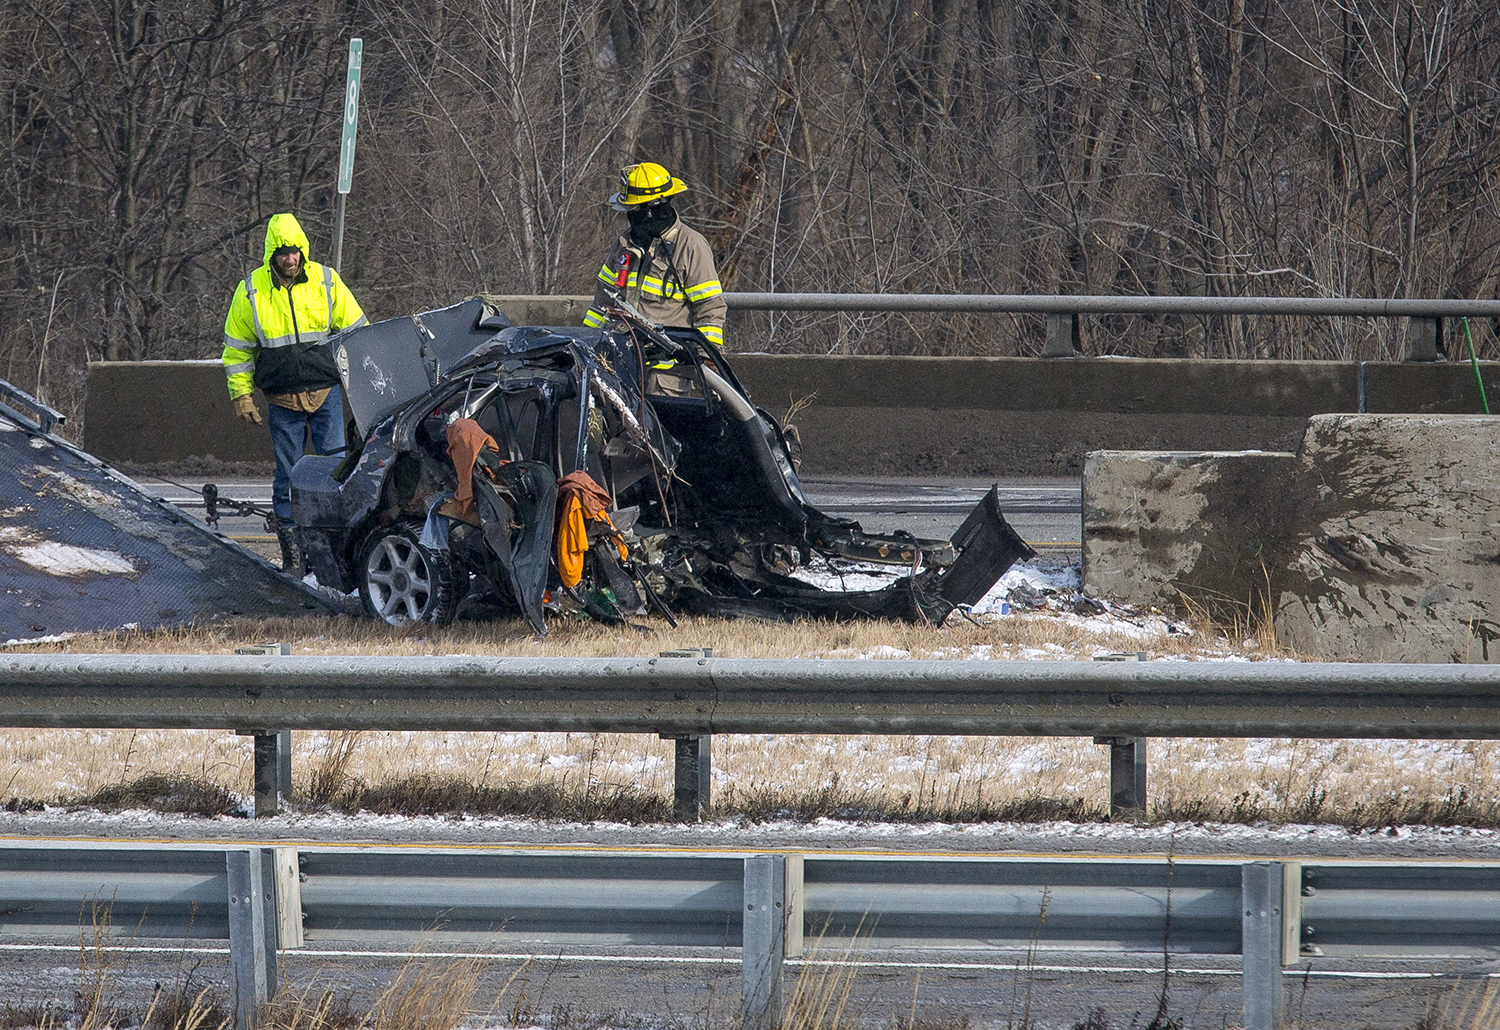 A man was killed when his car left the southbound lane of I- 55 between Illinois 4 and Divernon Monday, Jan. 15, 2018 and struck a concrete bridge barrier. Illinois State Police said the vehicle was reportedly traveling at a high rate of speed just before the crash. [Rich Saal/The State Journal-Register]